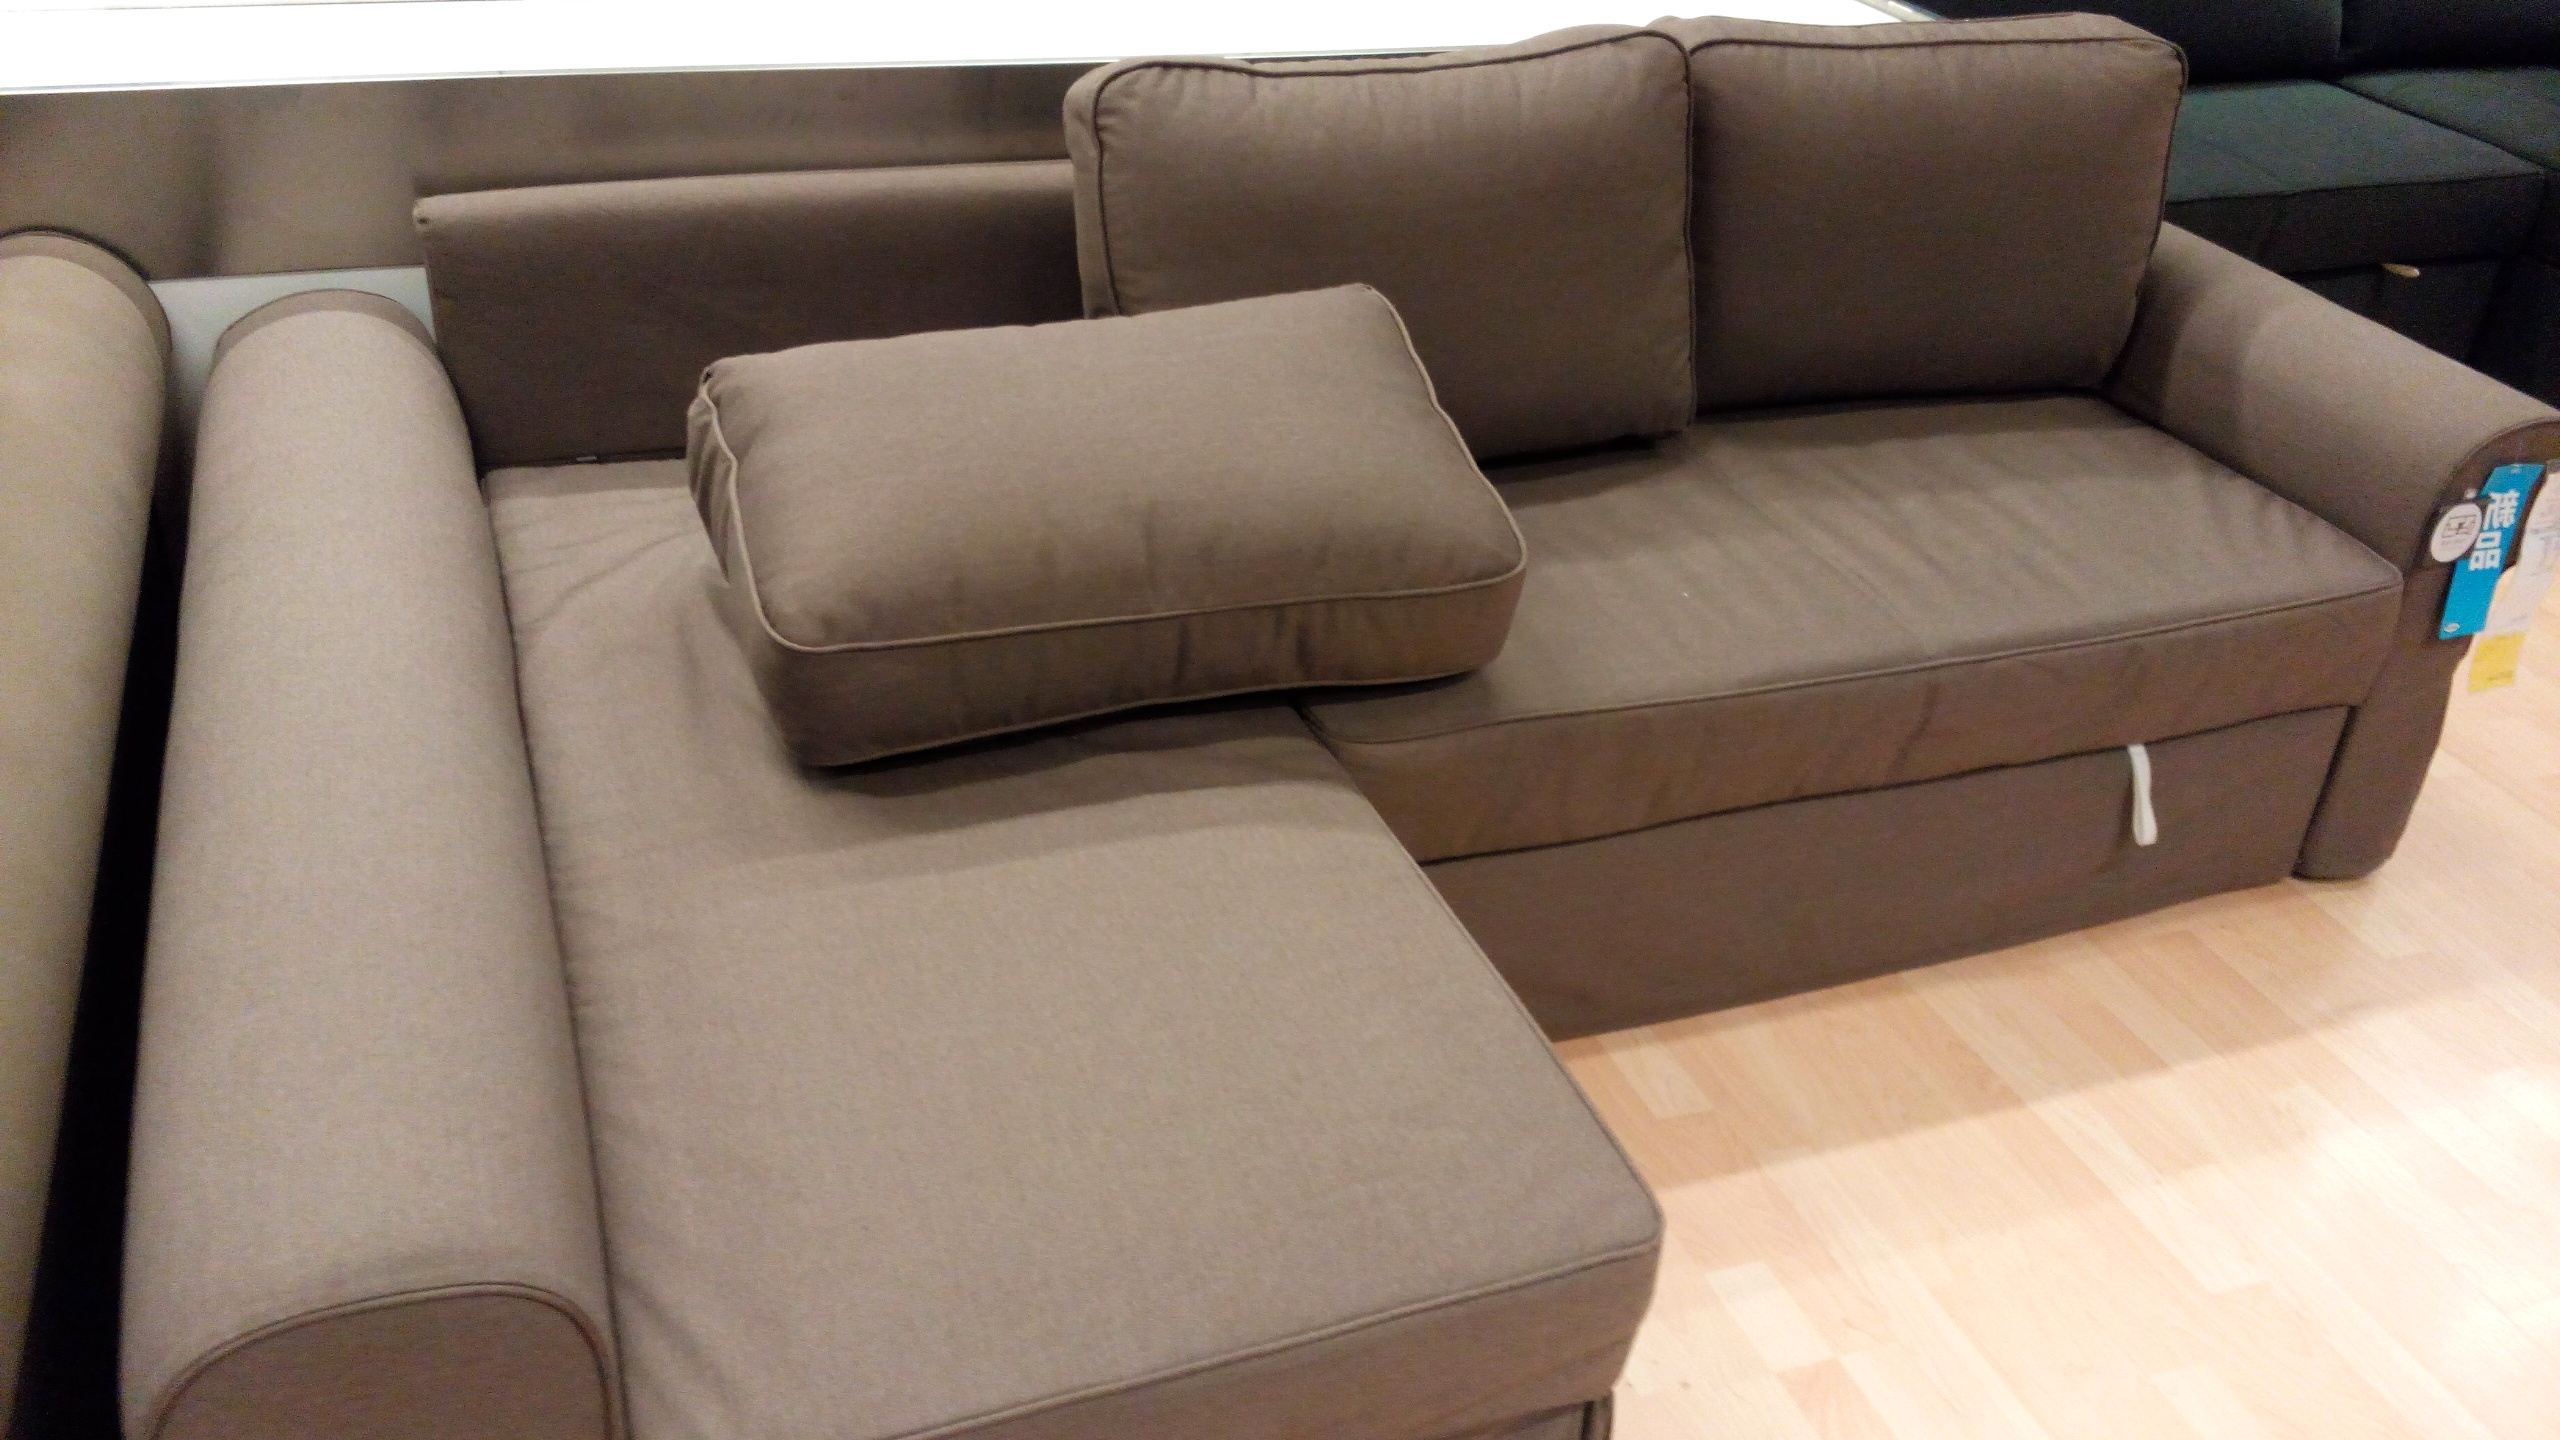 Widely Used Manstad Sofas Pertaining To Ikea Vilasund And Backabro Review – Return Of The Sofa Bed Clones! (View 5 of 20)